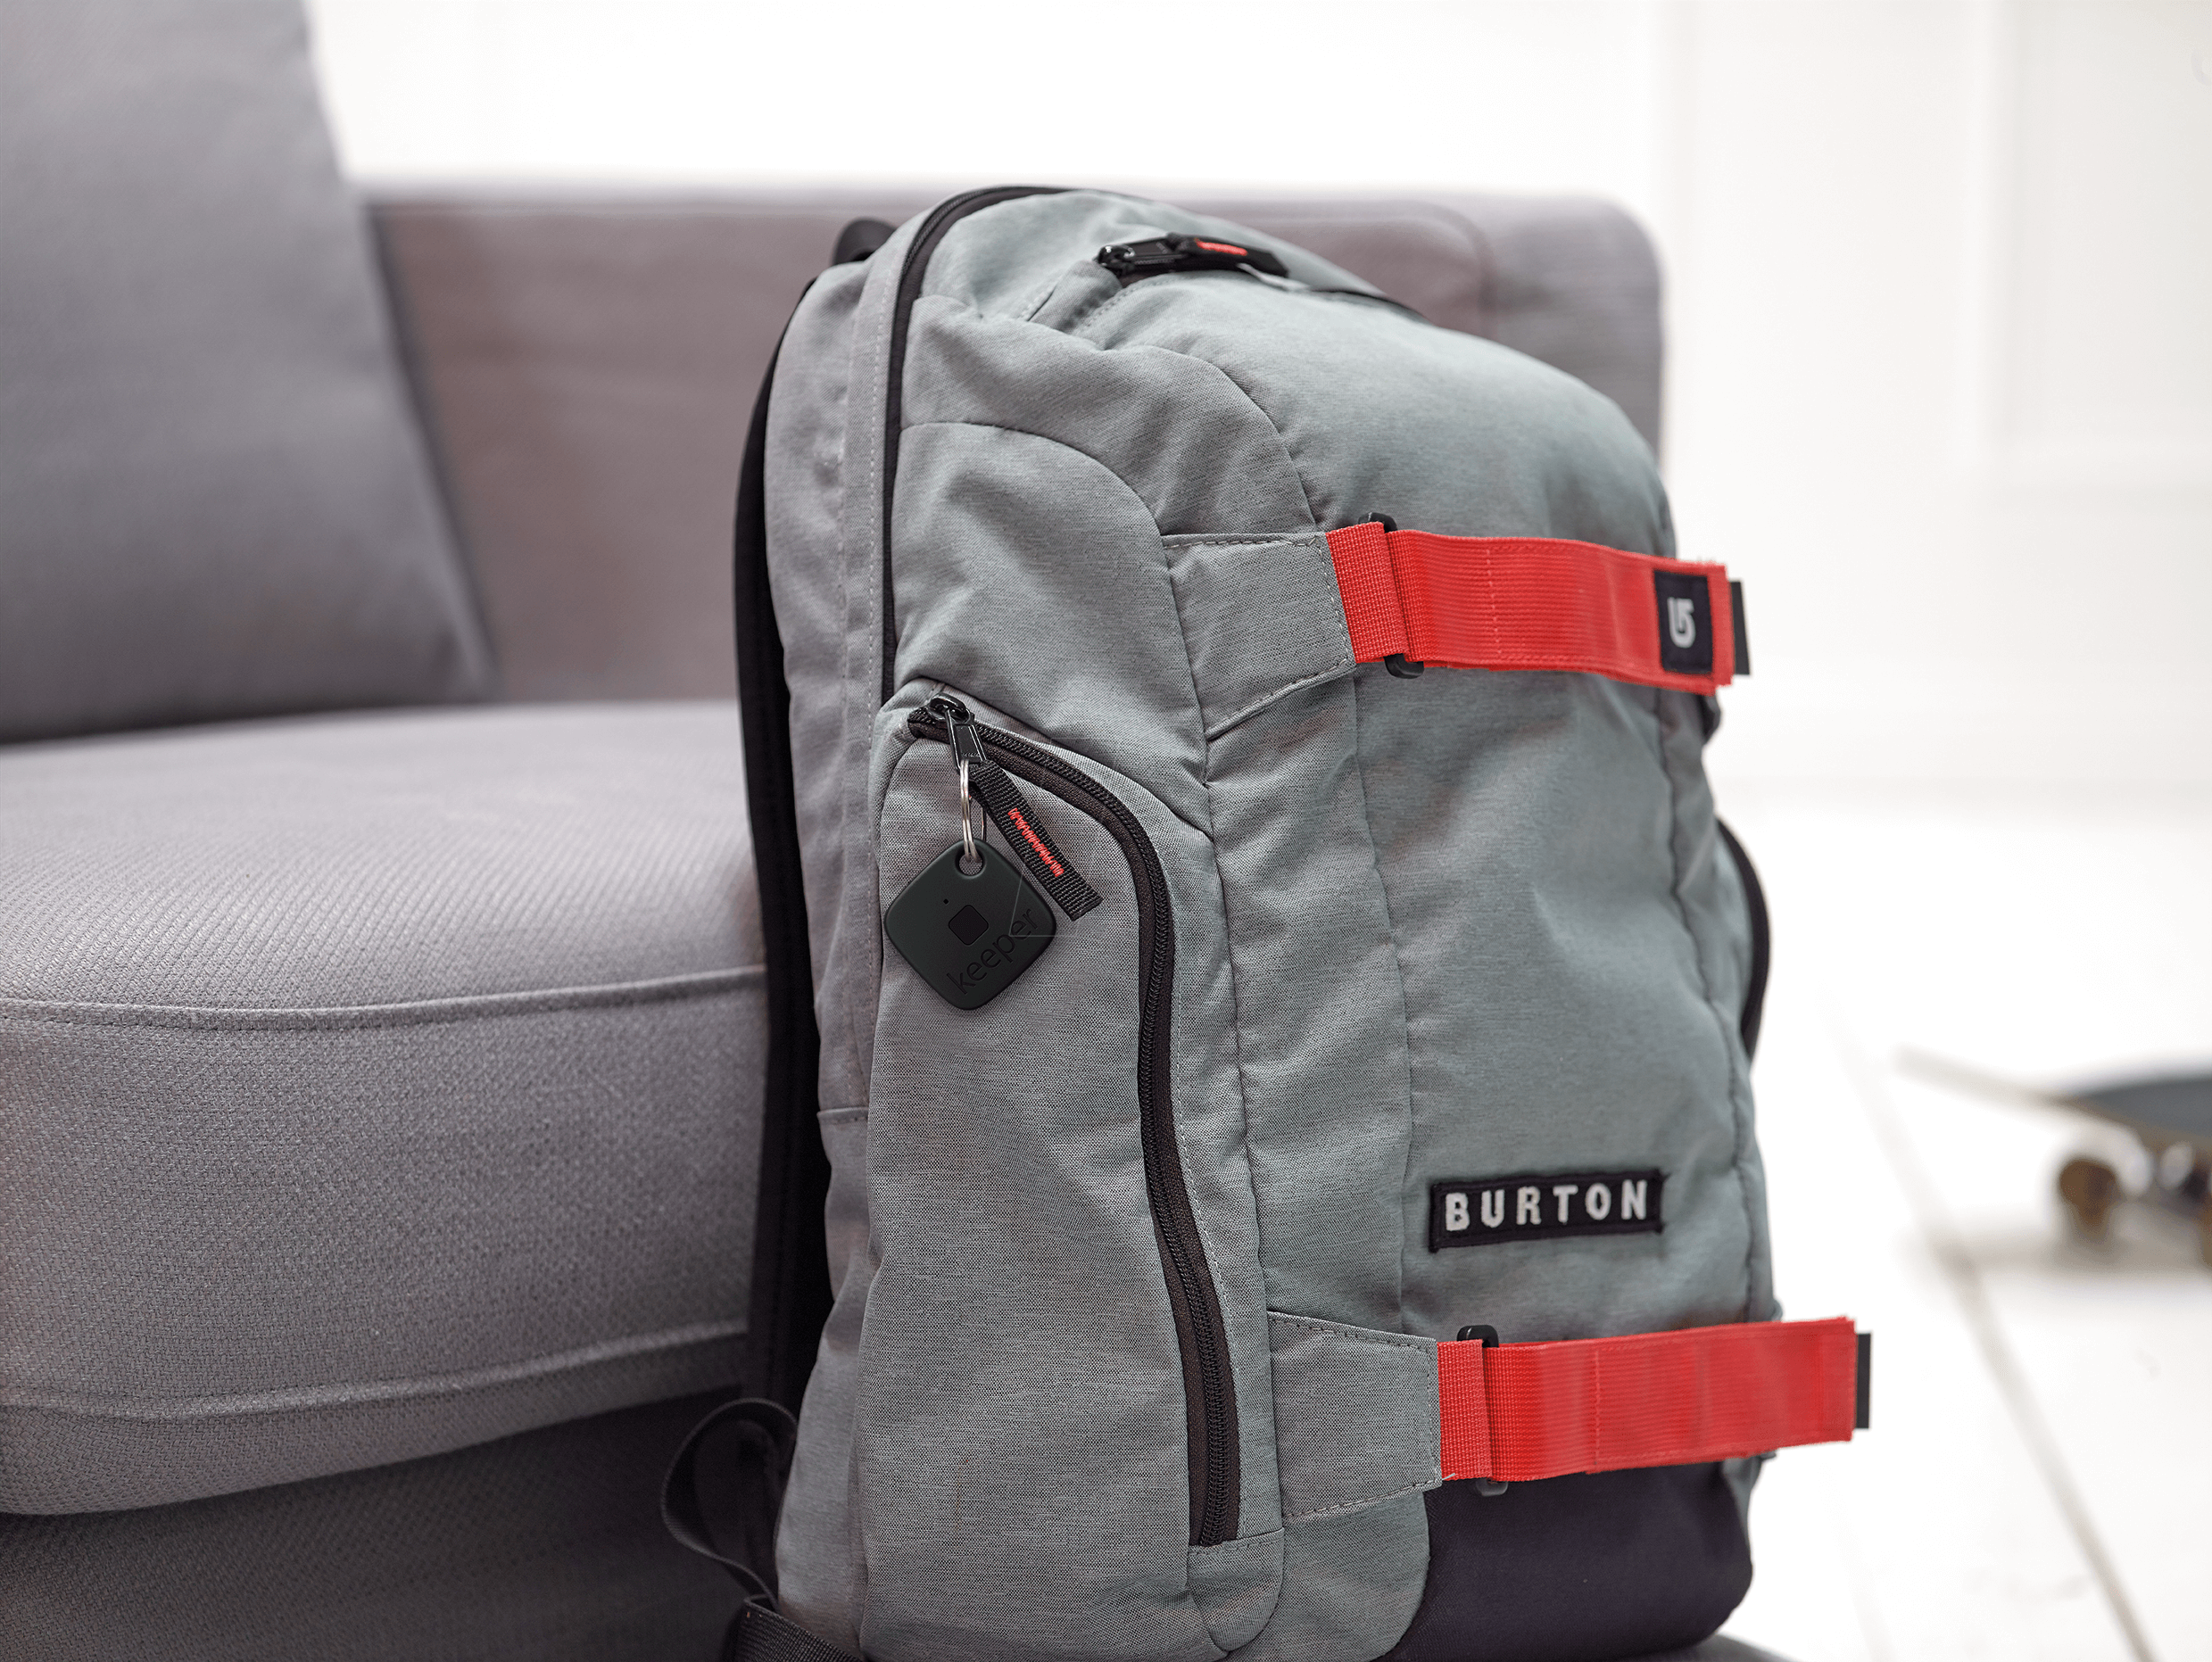 https://cdn-reichelt.de/bilder/web/xxl_ws/G700/KEEPER_ON_BACKPACK.png